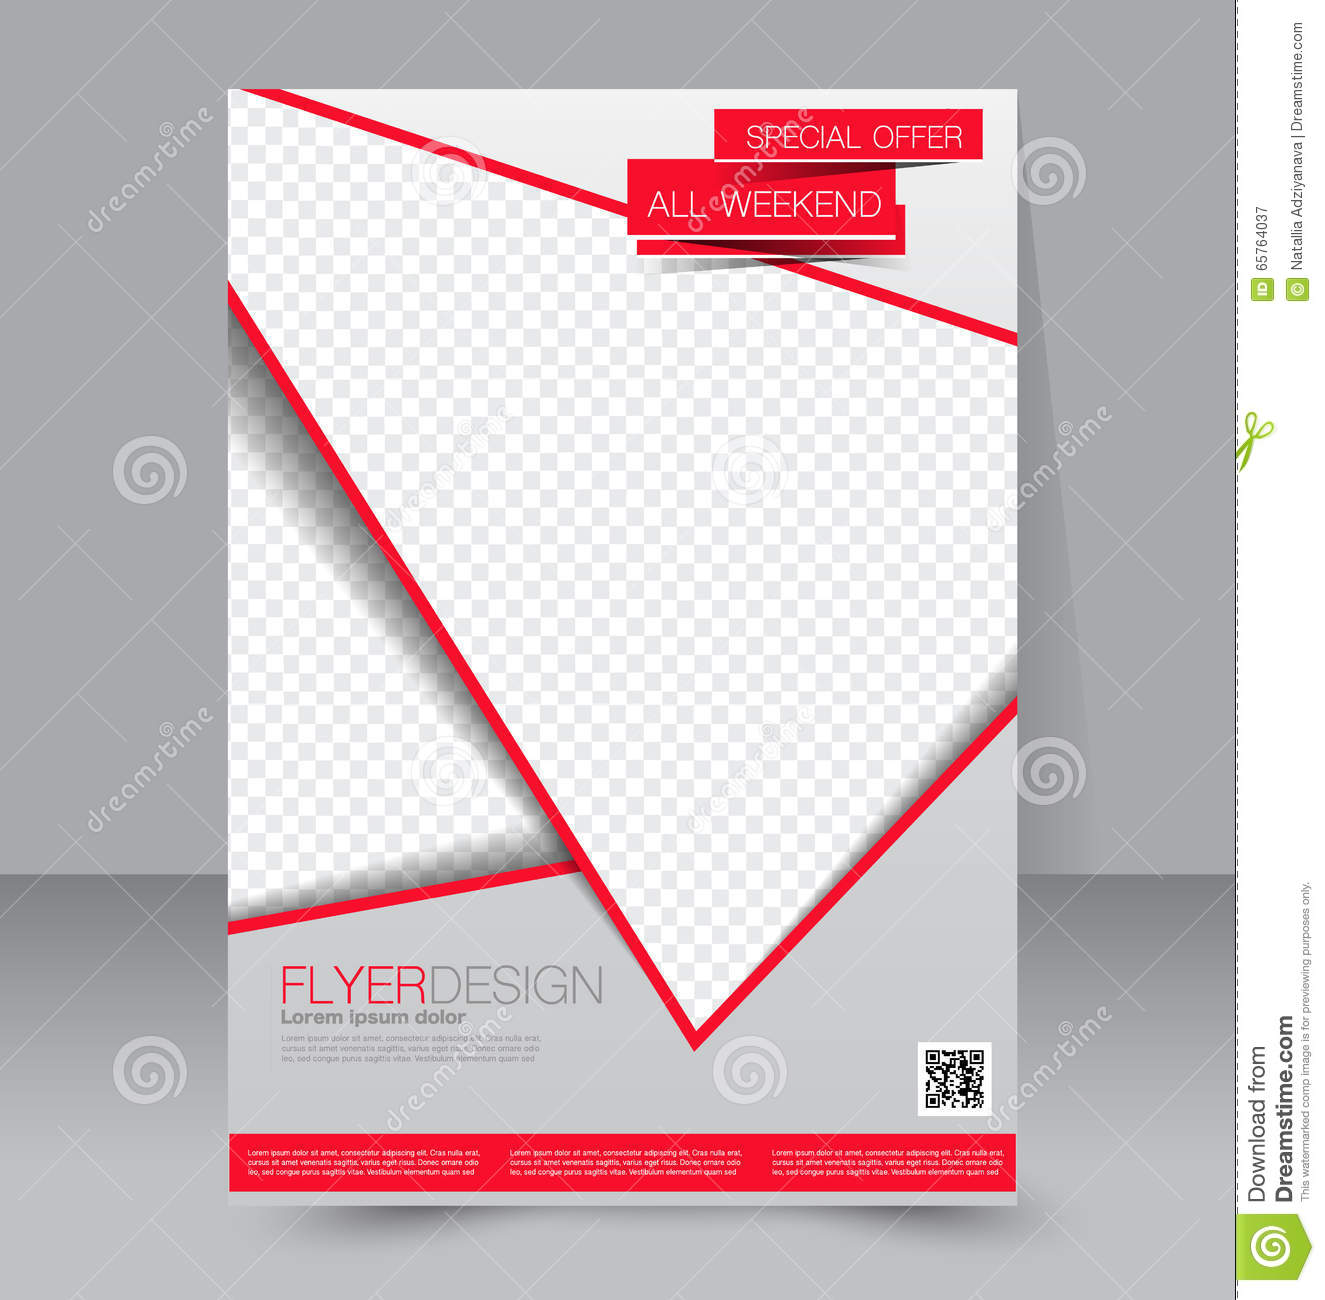 Brochure Design Flyer Template Editable A4 Poster